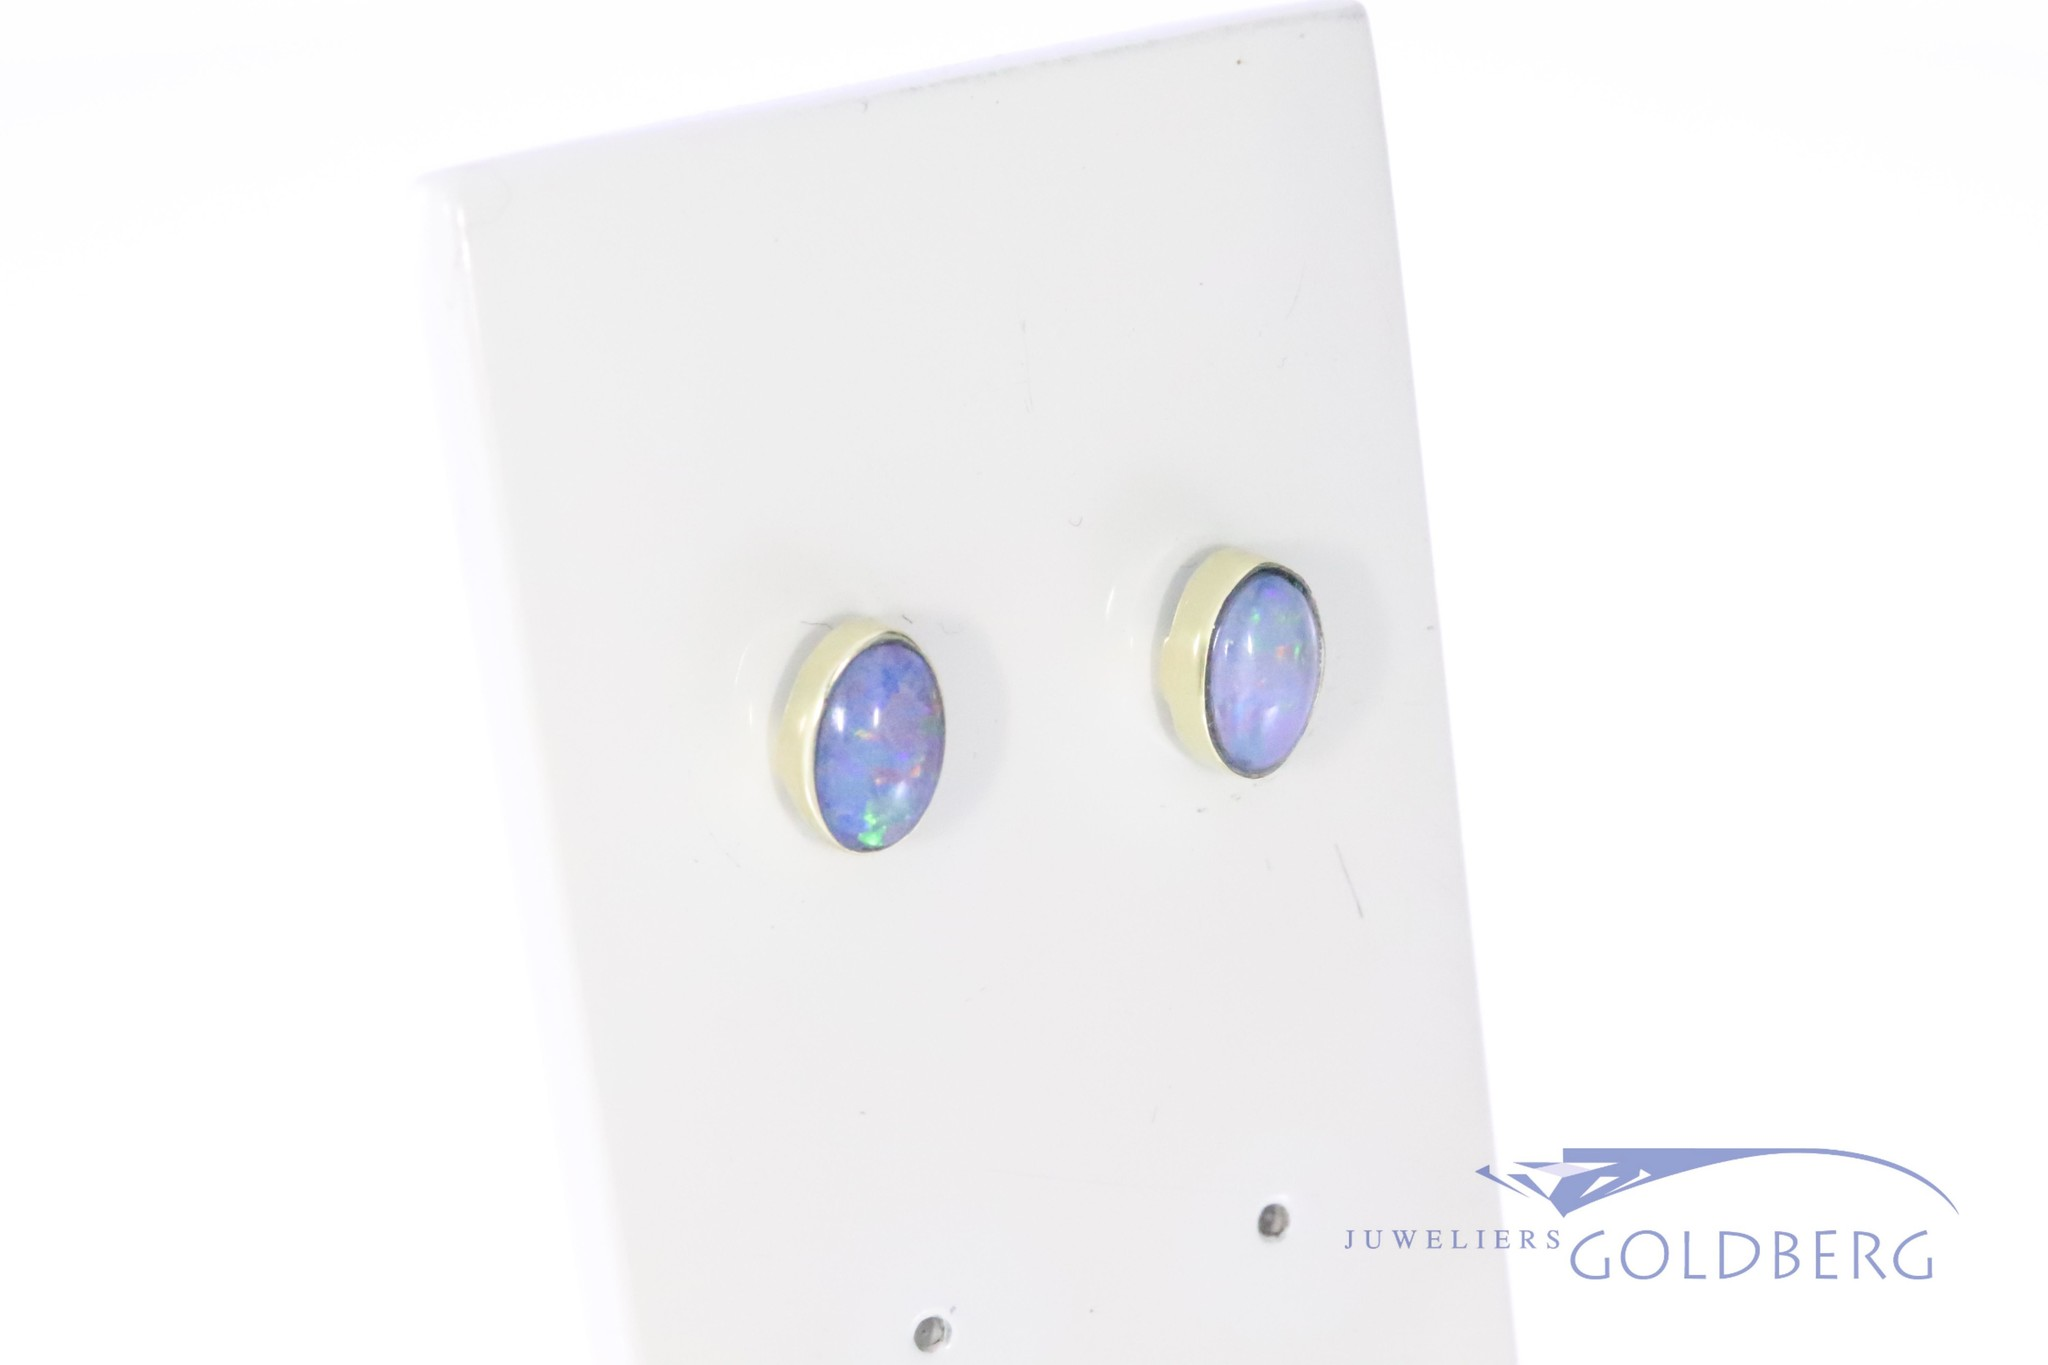 14k gold ear studs with opal 6x4mm from our own workshop